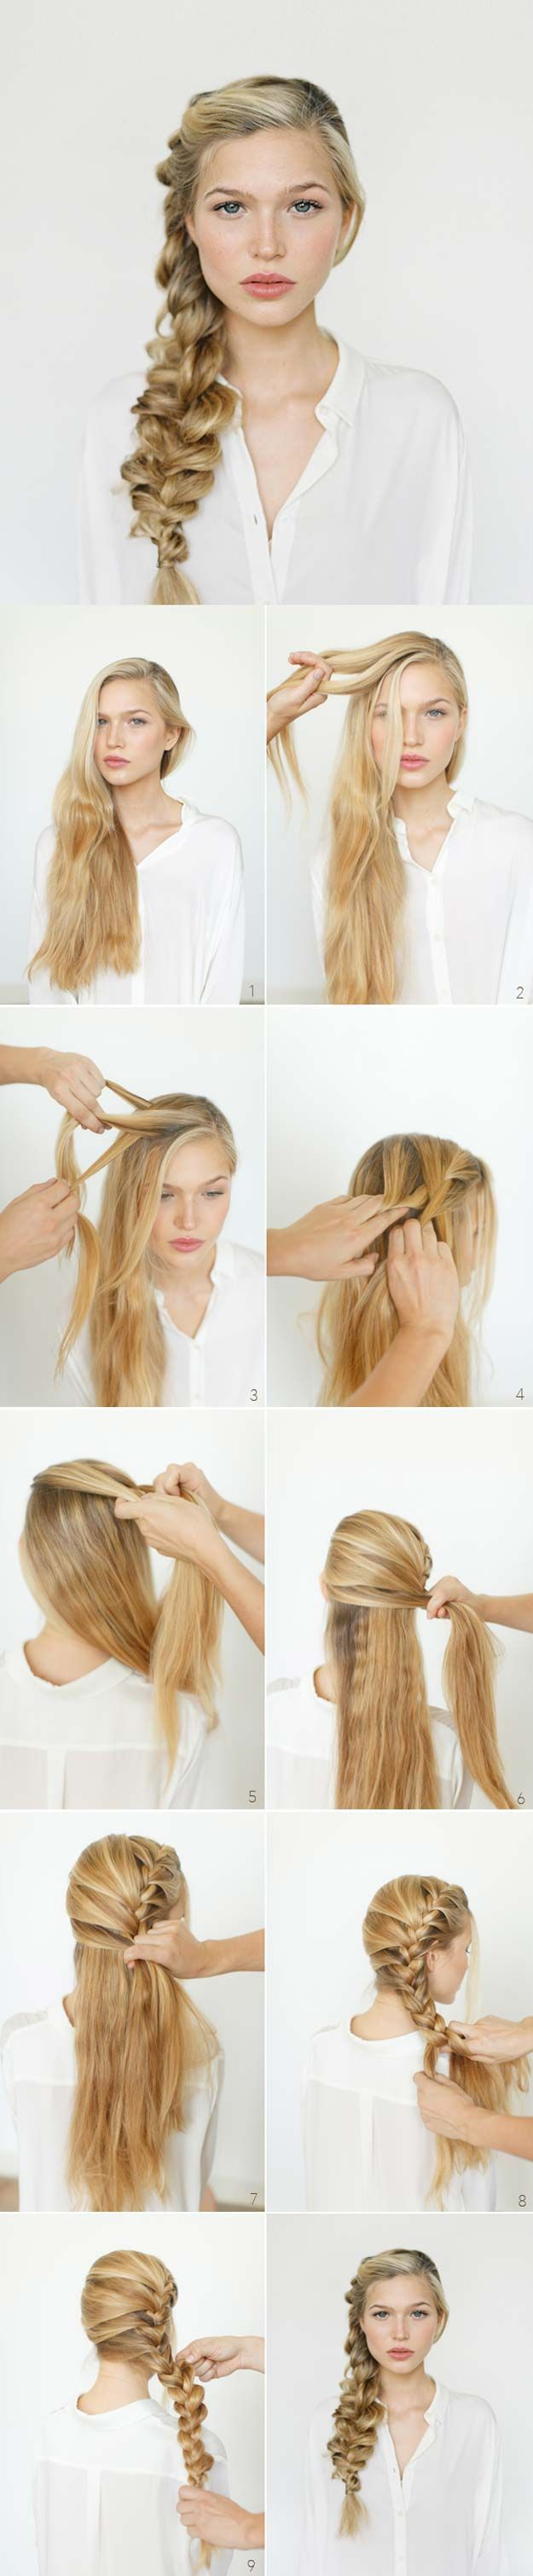 33 Best Hairstyles For Your 20s The Goddess Medium Length Hair Styles Braids For Medium Length Hair Long Hair Styles